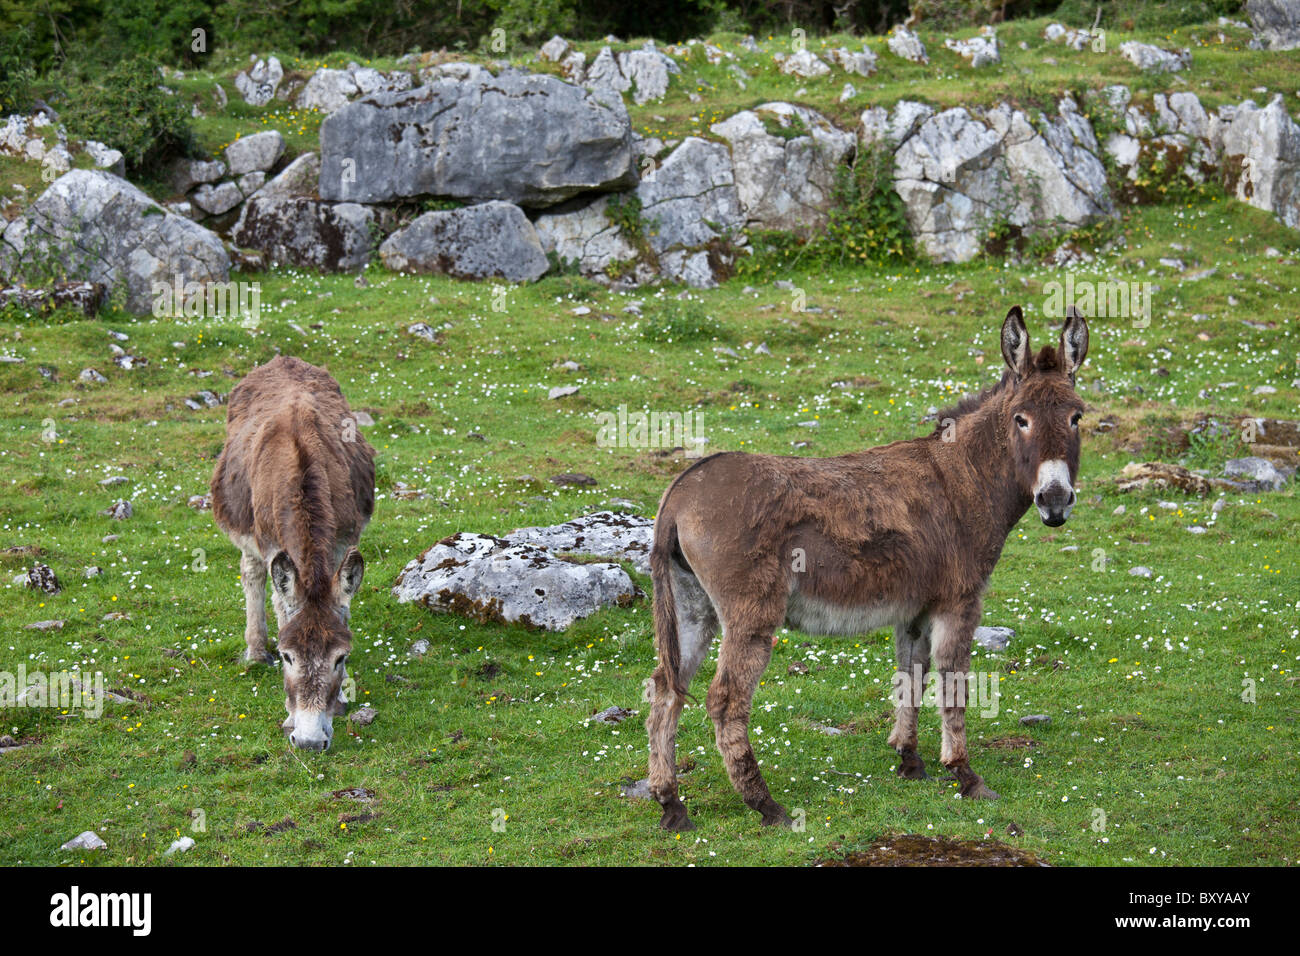 Traditional Irish brown and grey donkeys in The Burren, County Clare, West of Ireland - Stock Image